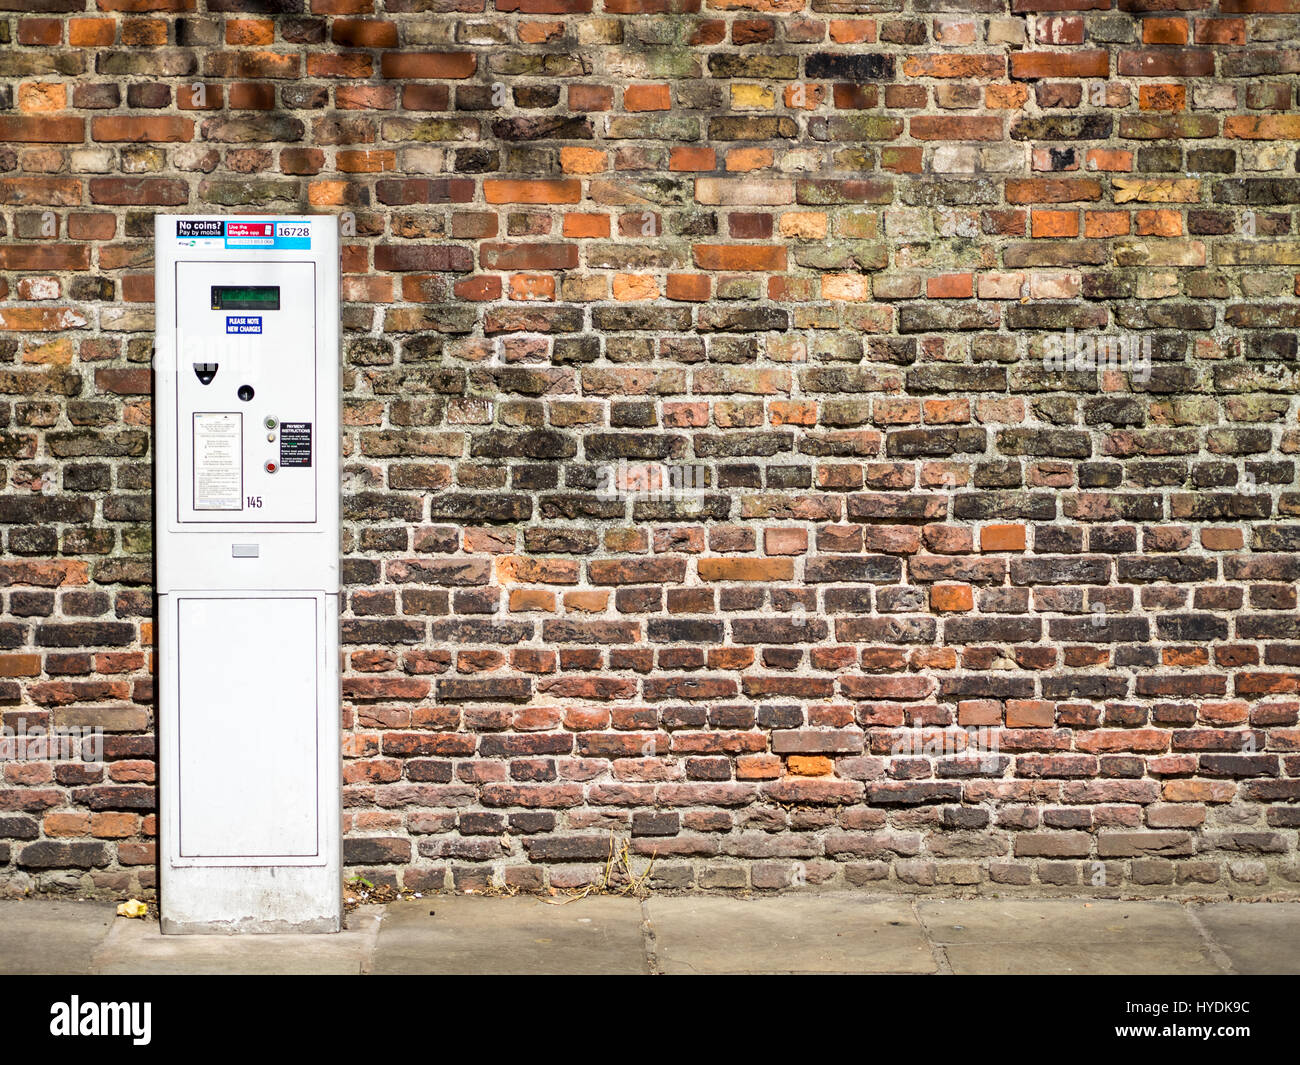 Parking Ticket machine against an old brick wall outside Jesus College, Cambridge, UK - Stock Image